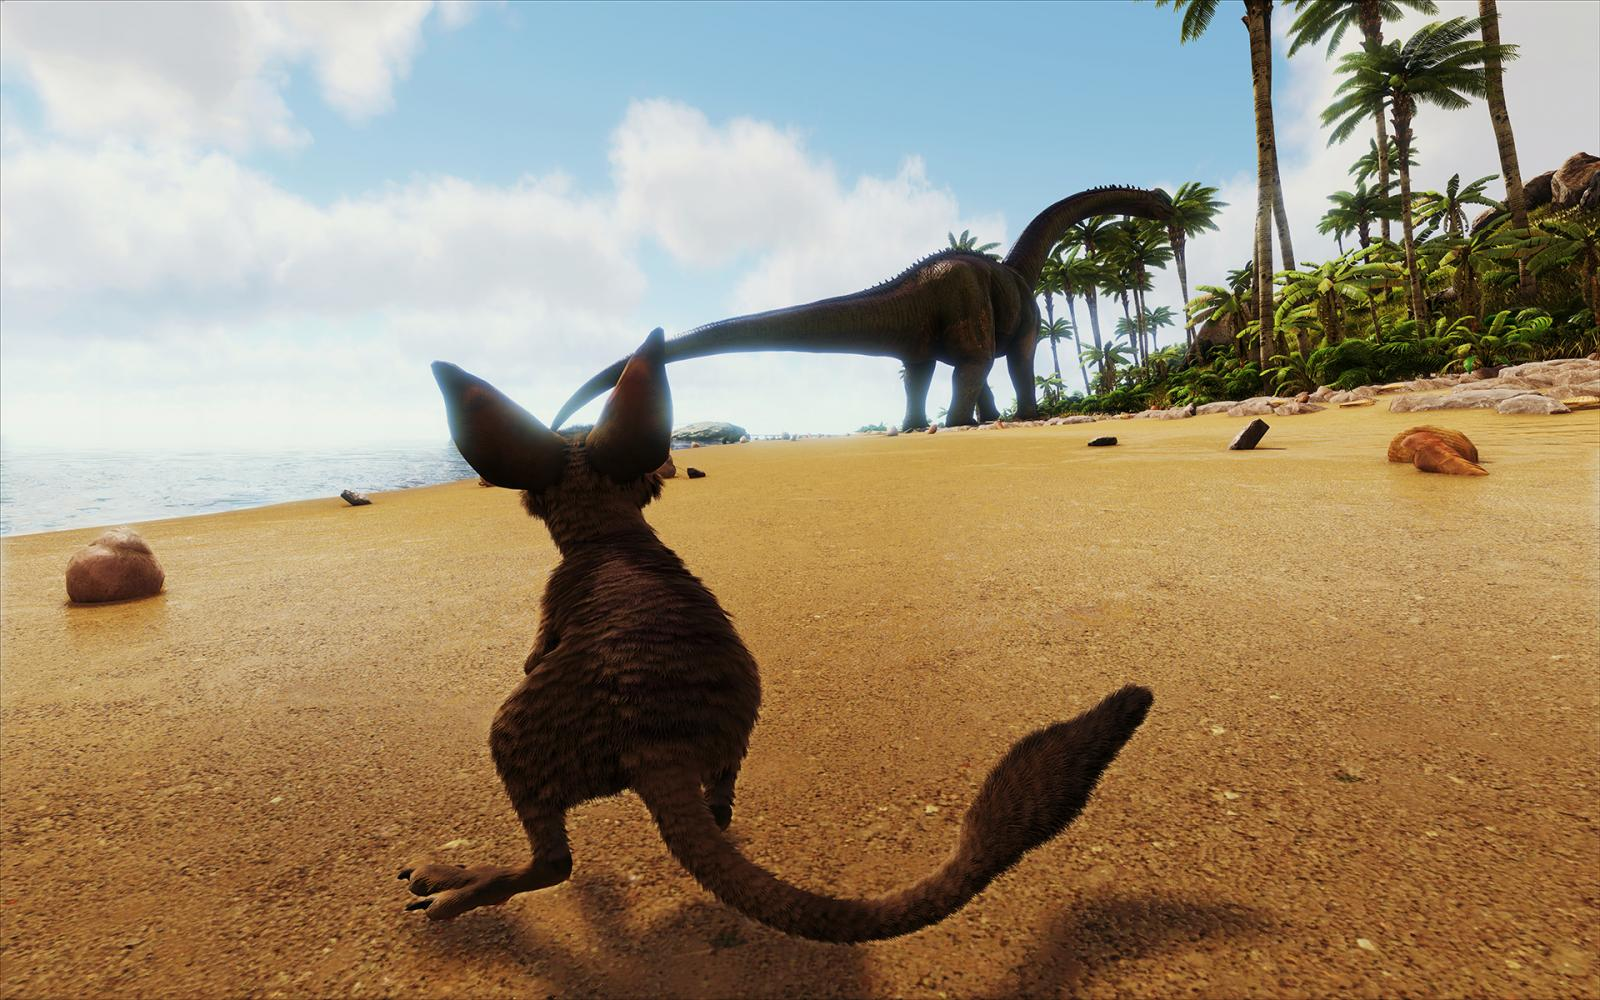 Sony verbietet Crossplay von PS4/Xbox One bei ARK Survival Evolved